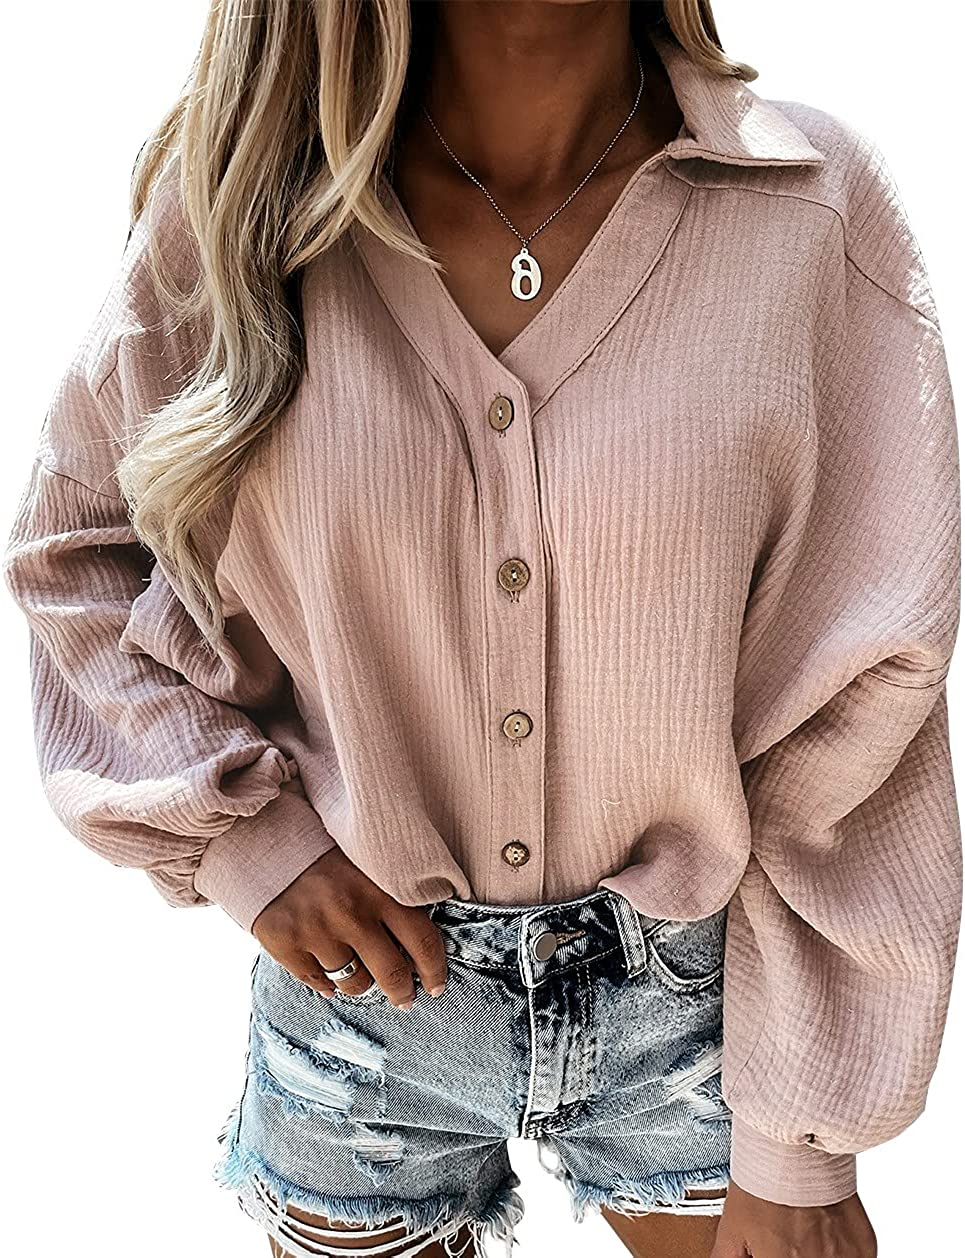 METINI Womens Casual Button Down Collared V Neck Blouses Long Sleeves Cotton Solid Color Tops Cute Loose Fit Shirts S-XXL